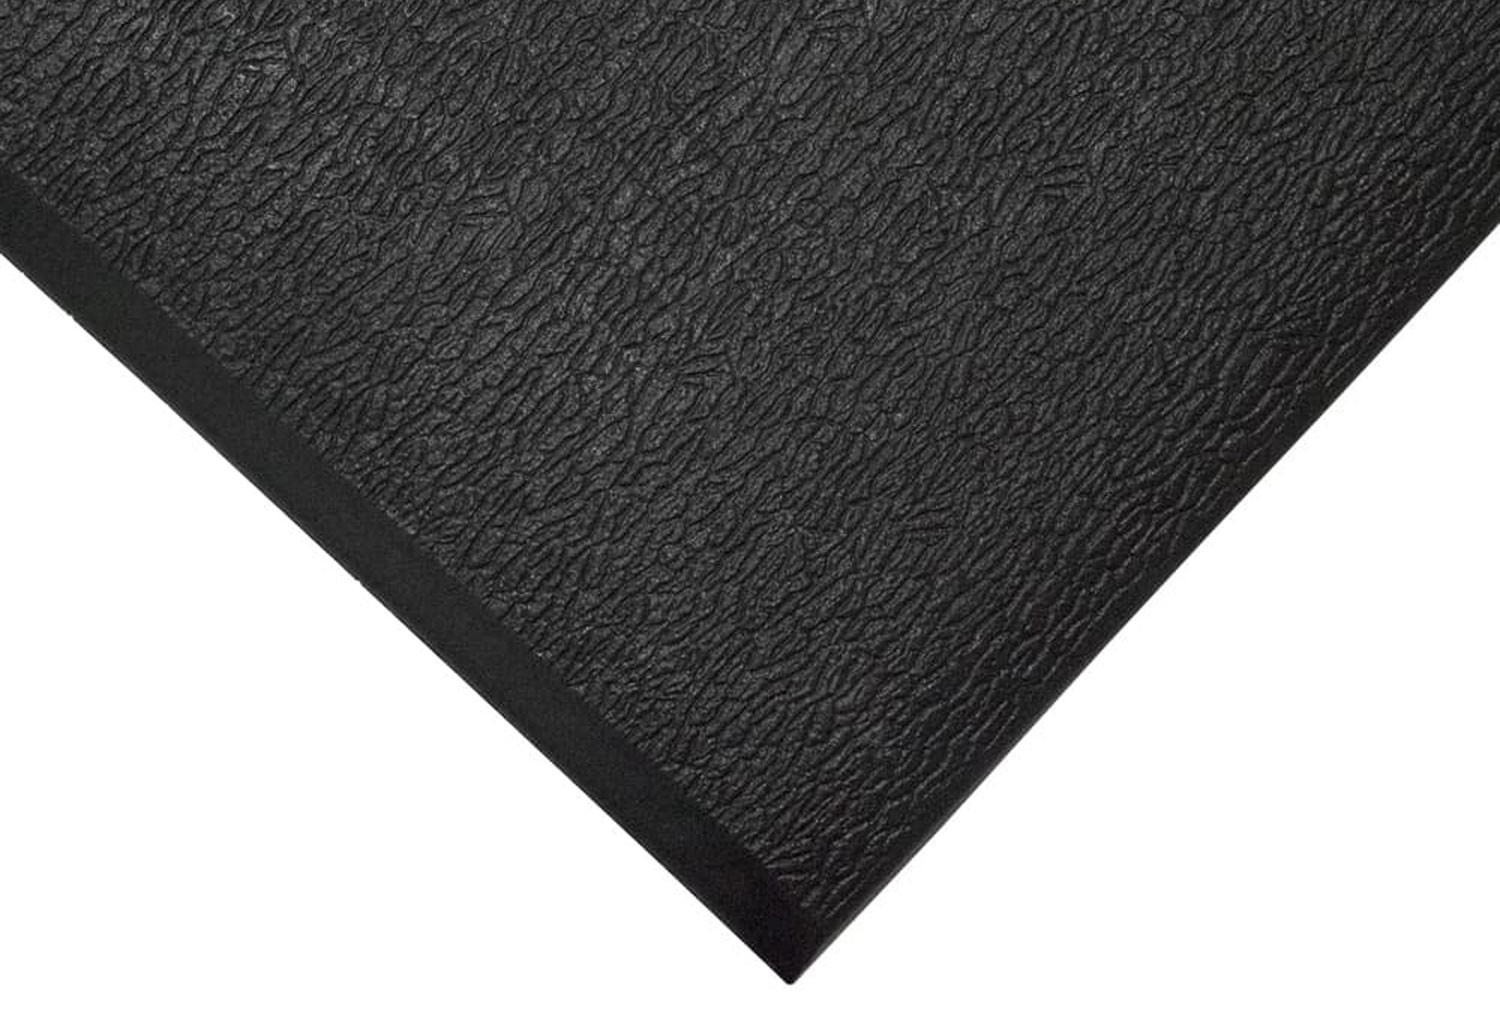 Orthomat Lite Anti Fatigue Mat